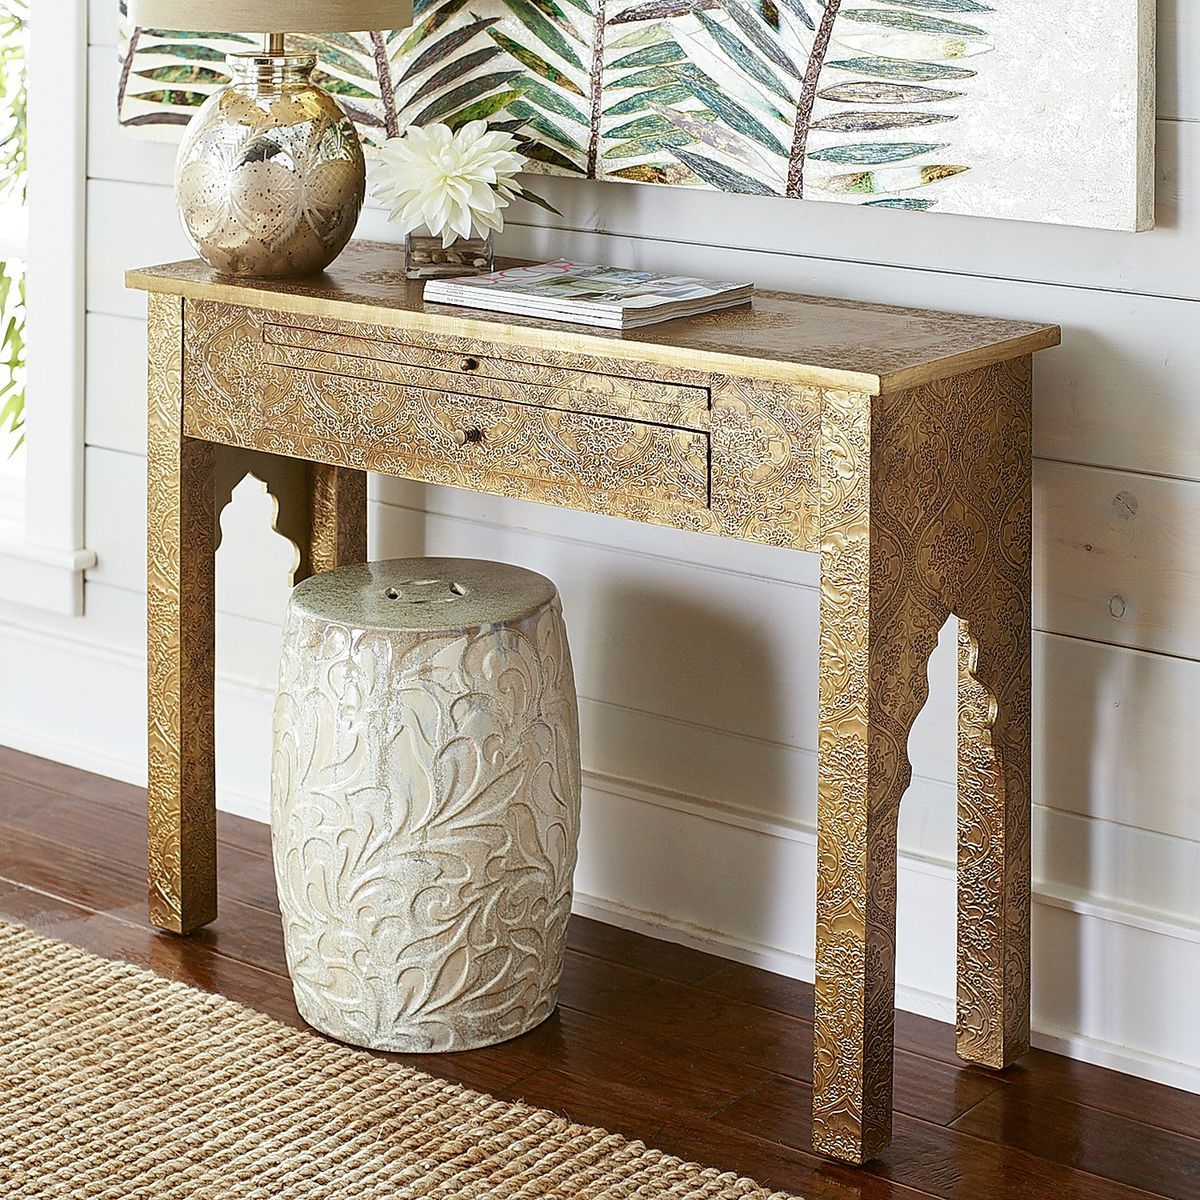 Marrakesh Bedroom Furniture Marrakesh Gold Console Table Console Tables Tables And Gold